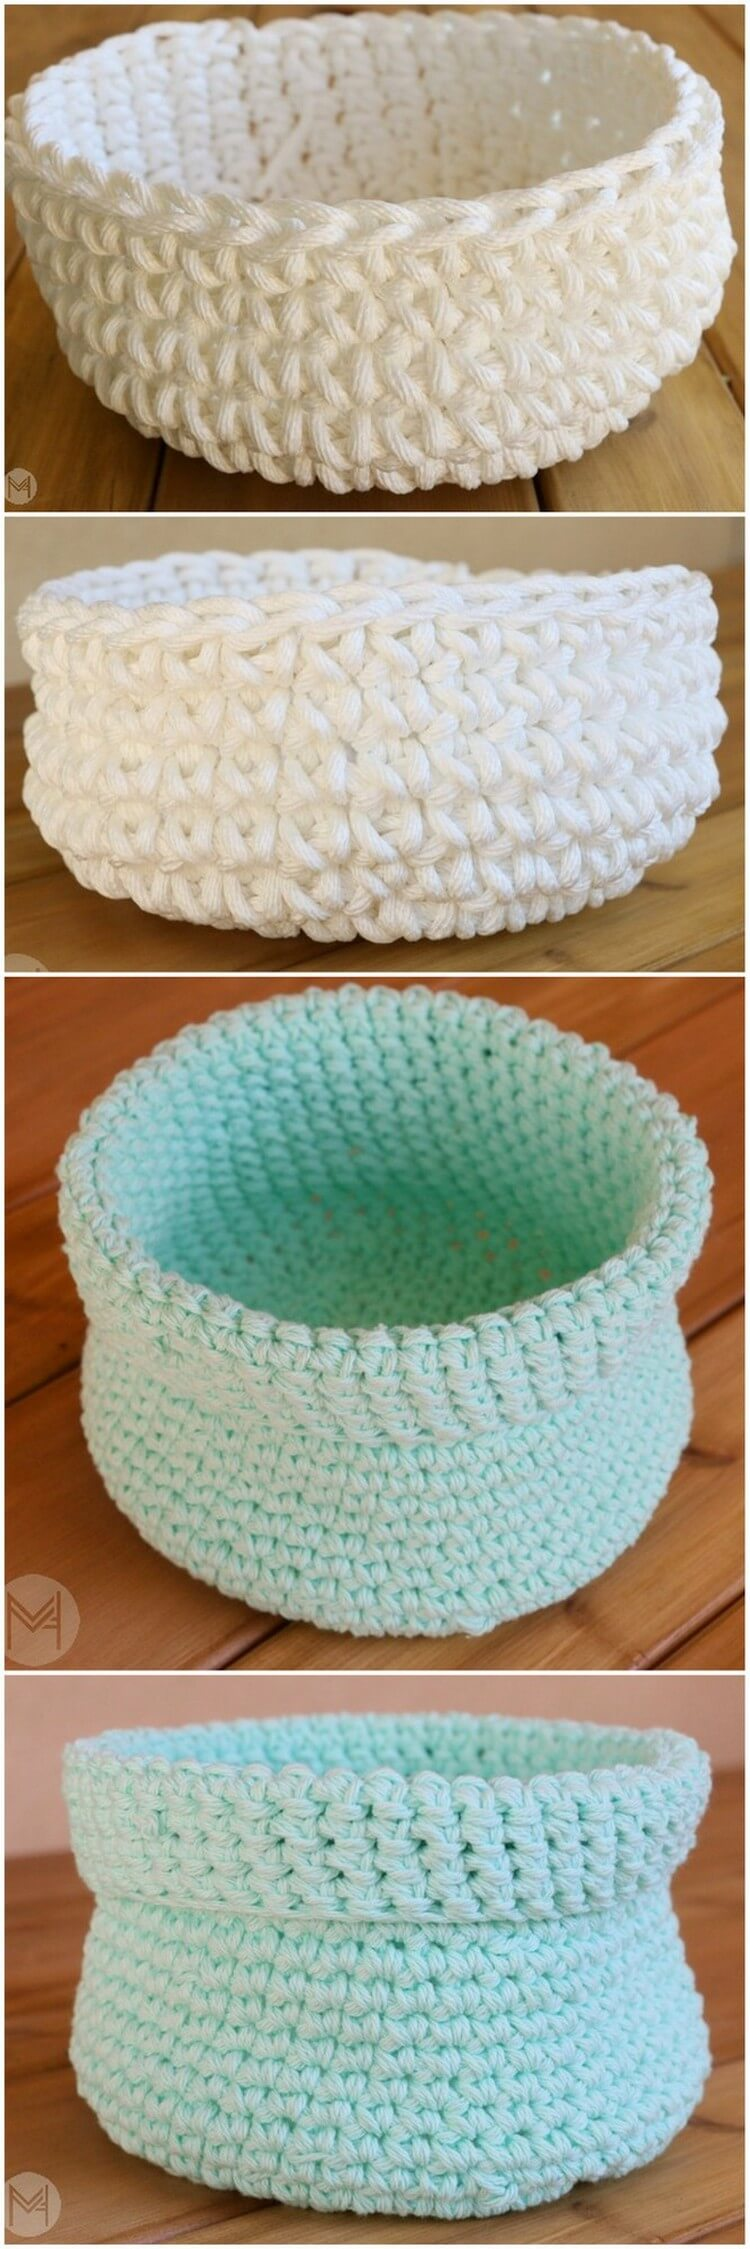 Crochet Basket Pattern (6)